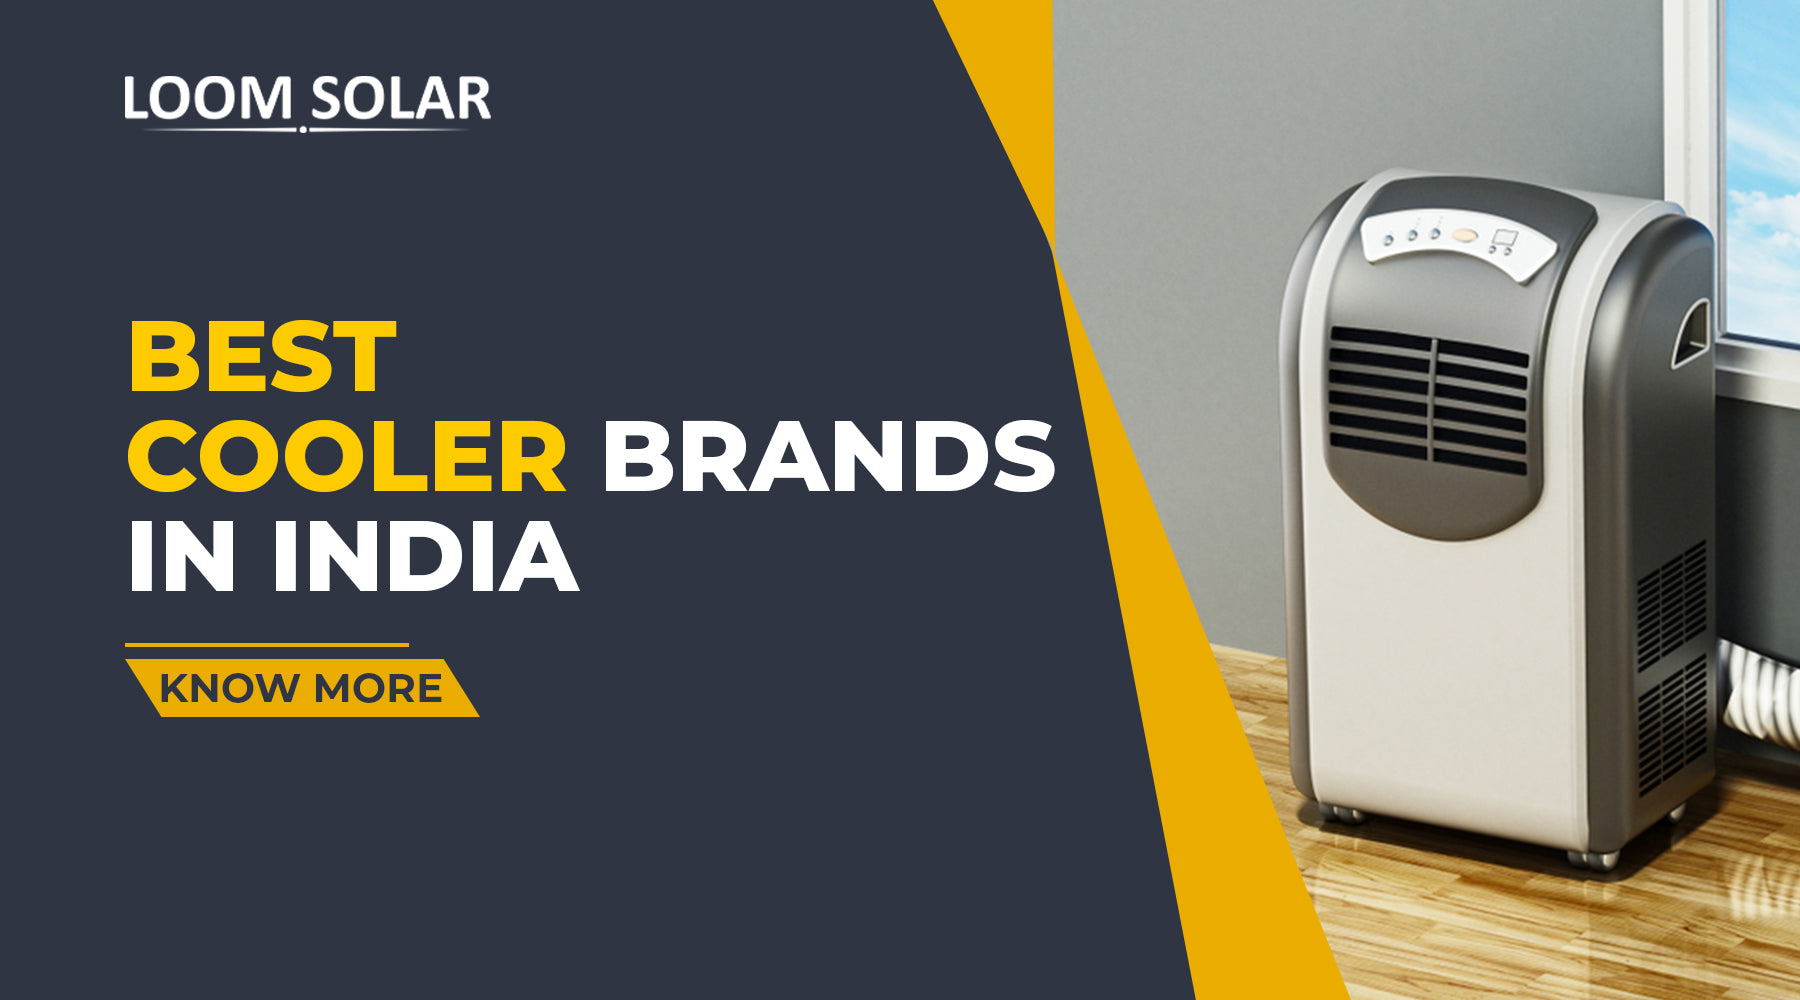 Best Cooler Brands in India, 2021